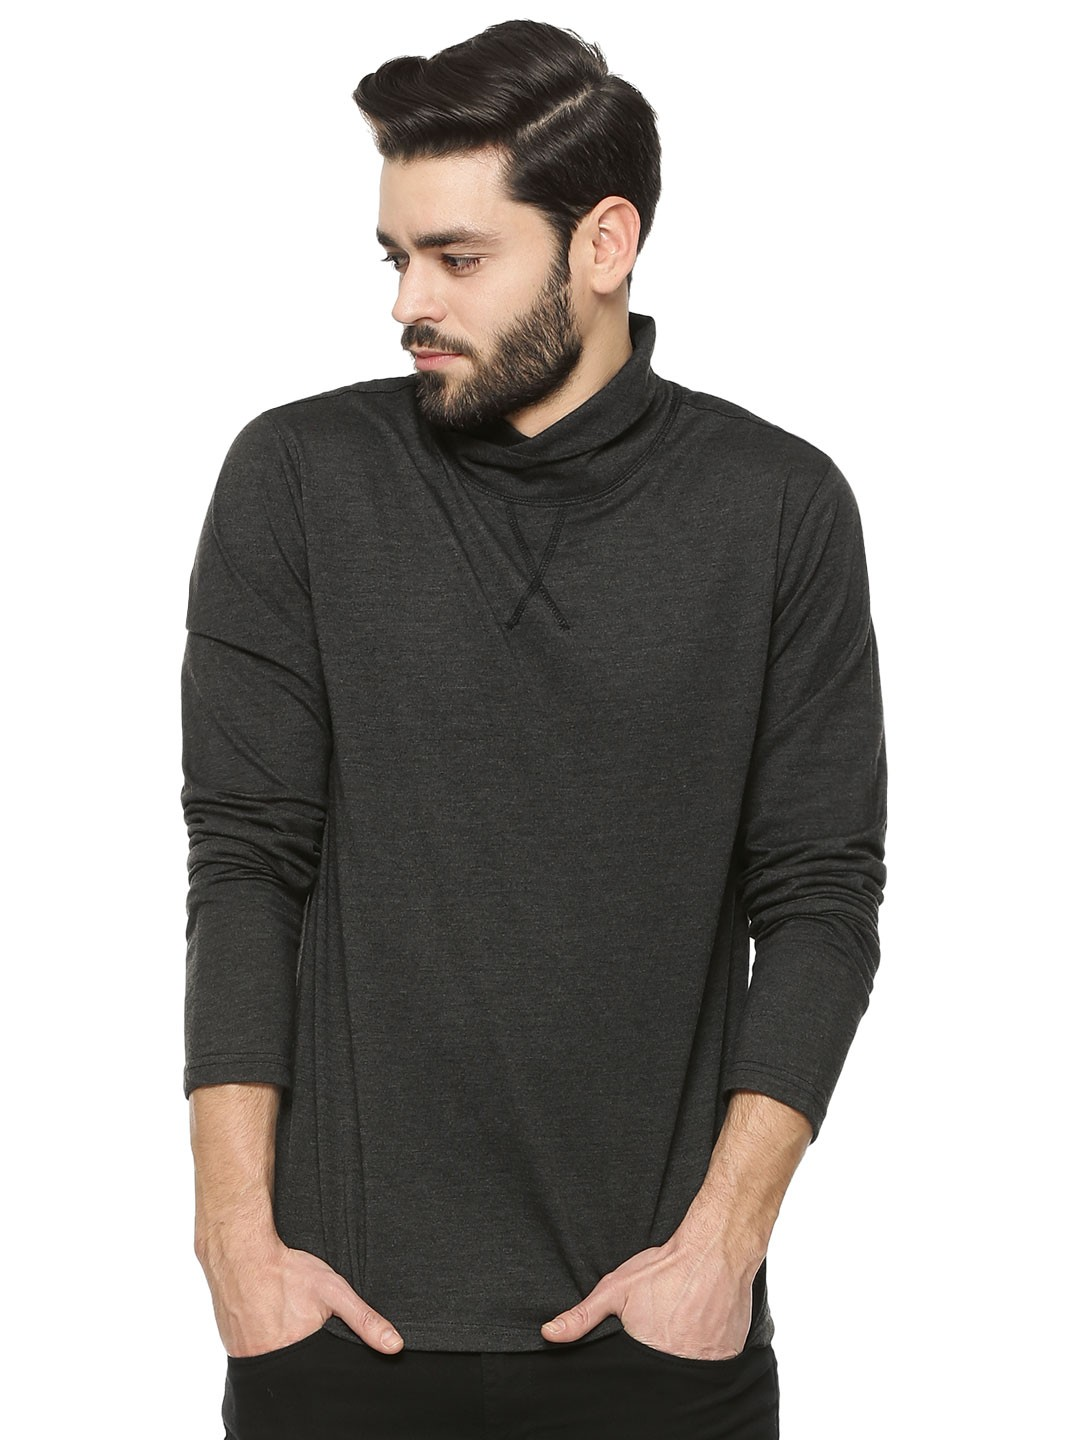 Buy atorse turtleneck t shirt for men men 39 s multi t for Turtleneck under t shirt